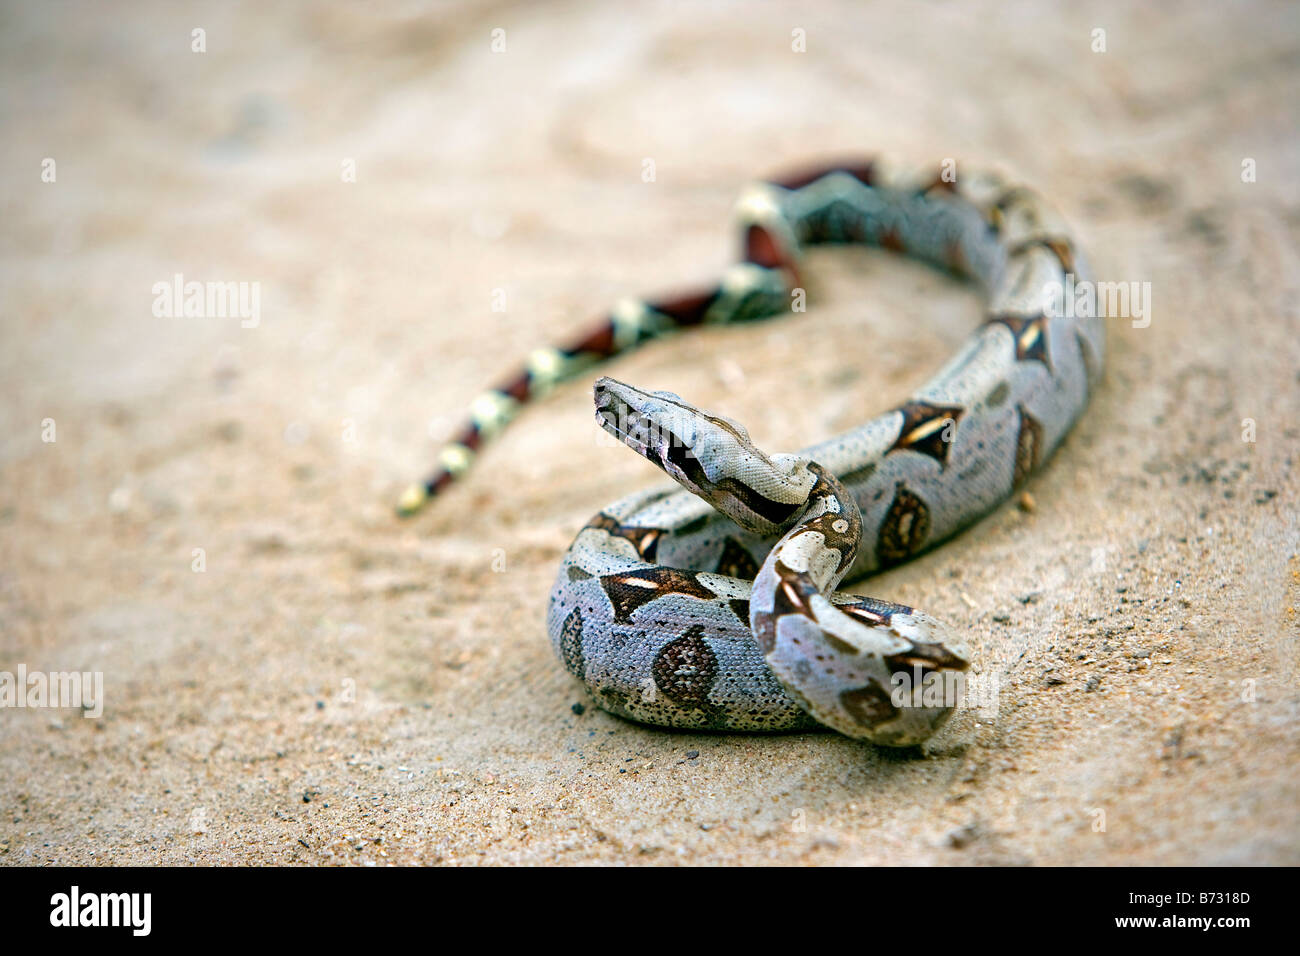 Suriname, Laduani, at the bank of the Boven Suriname river. Boa Constrictor. (Boa constrictor constrictor). - Stock Image